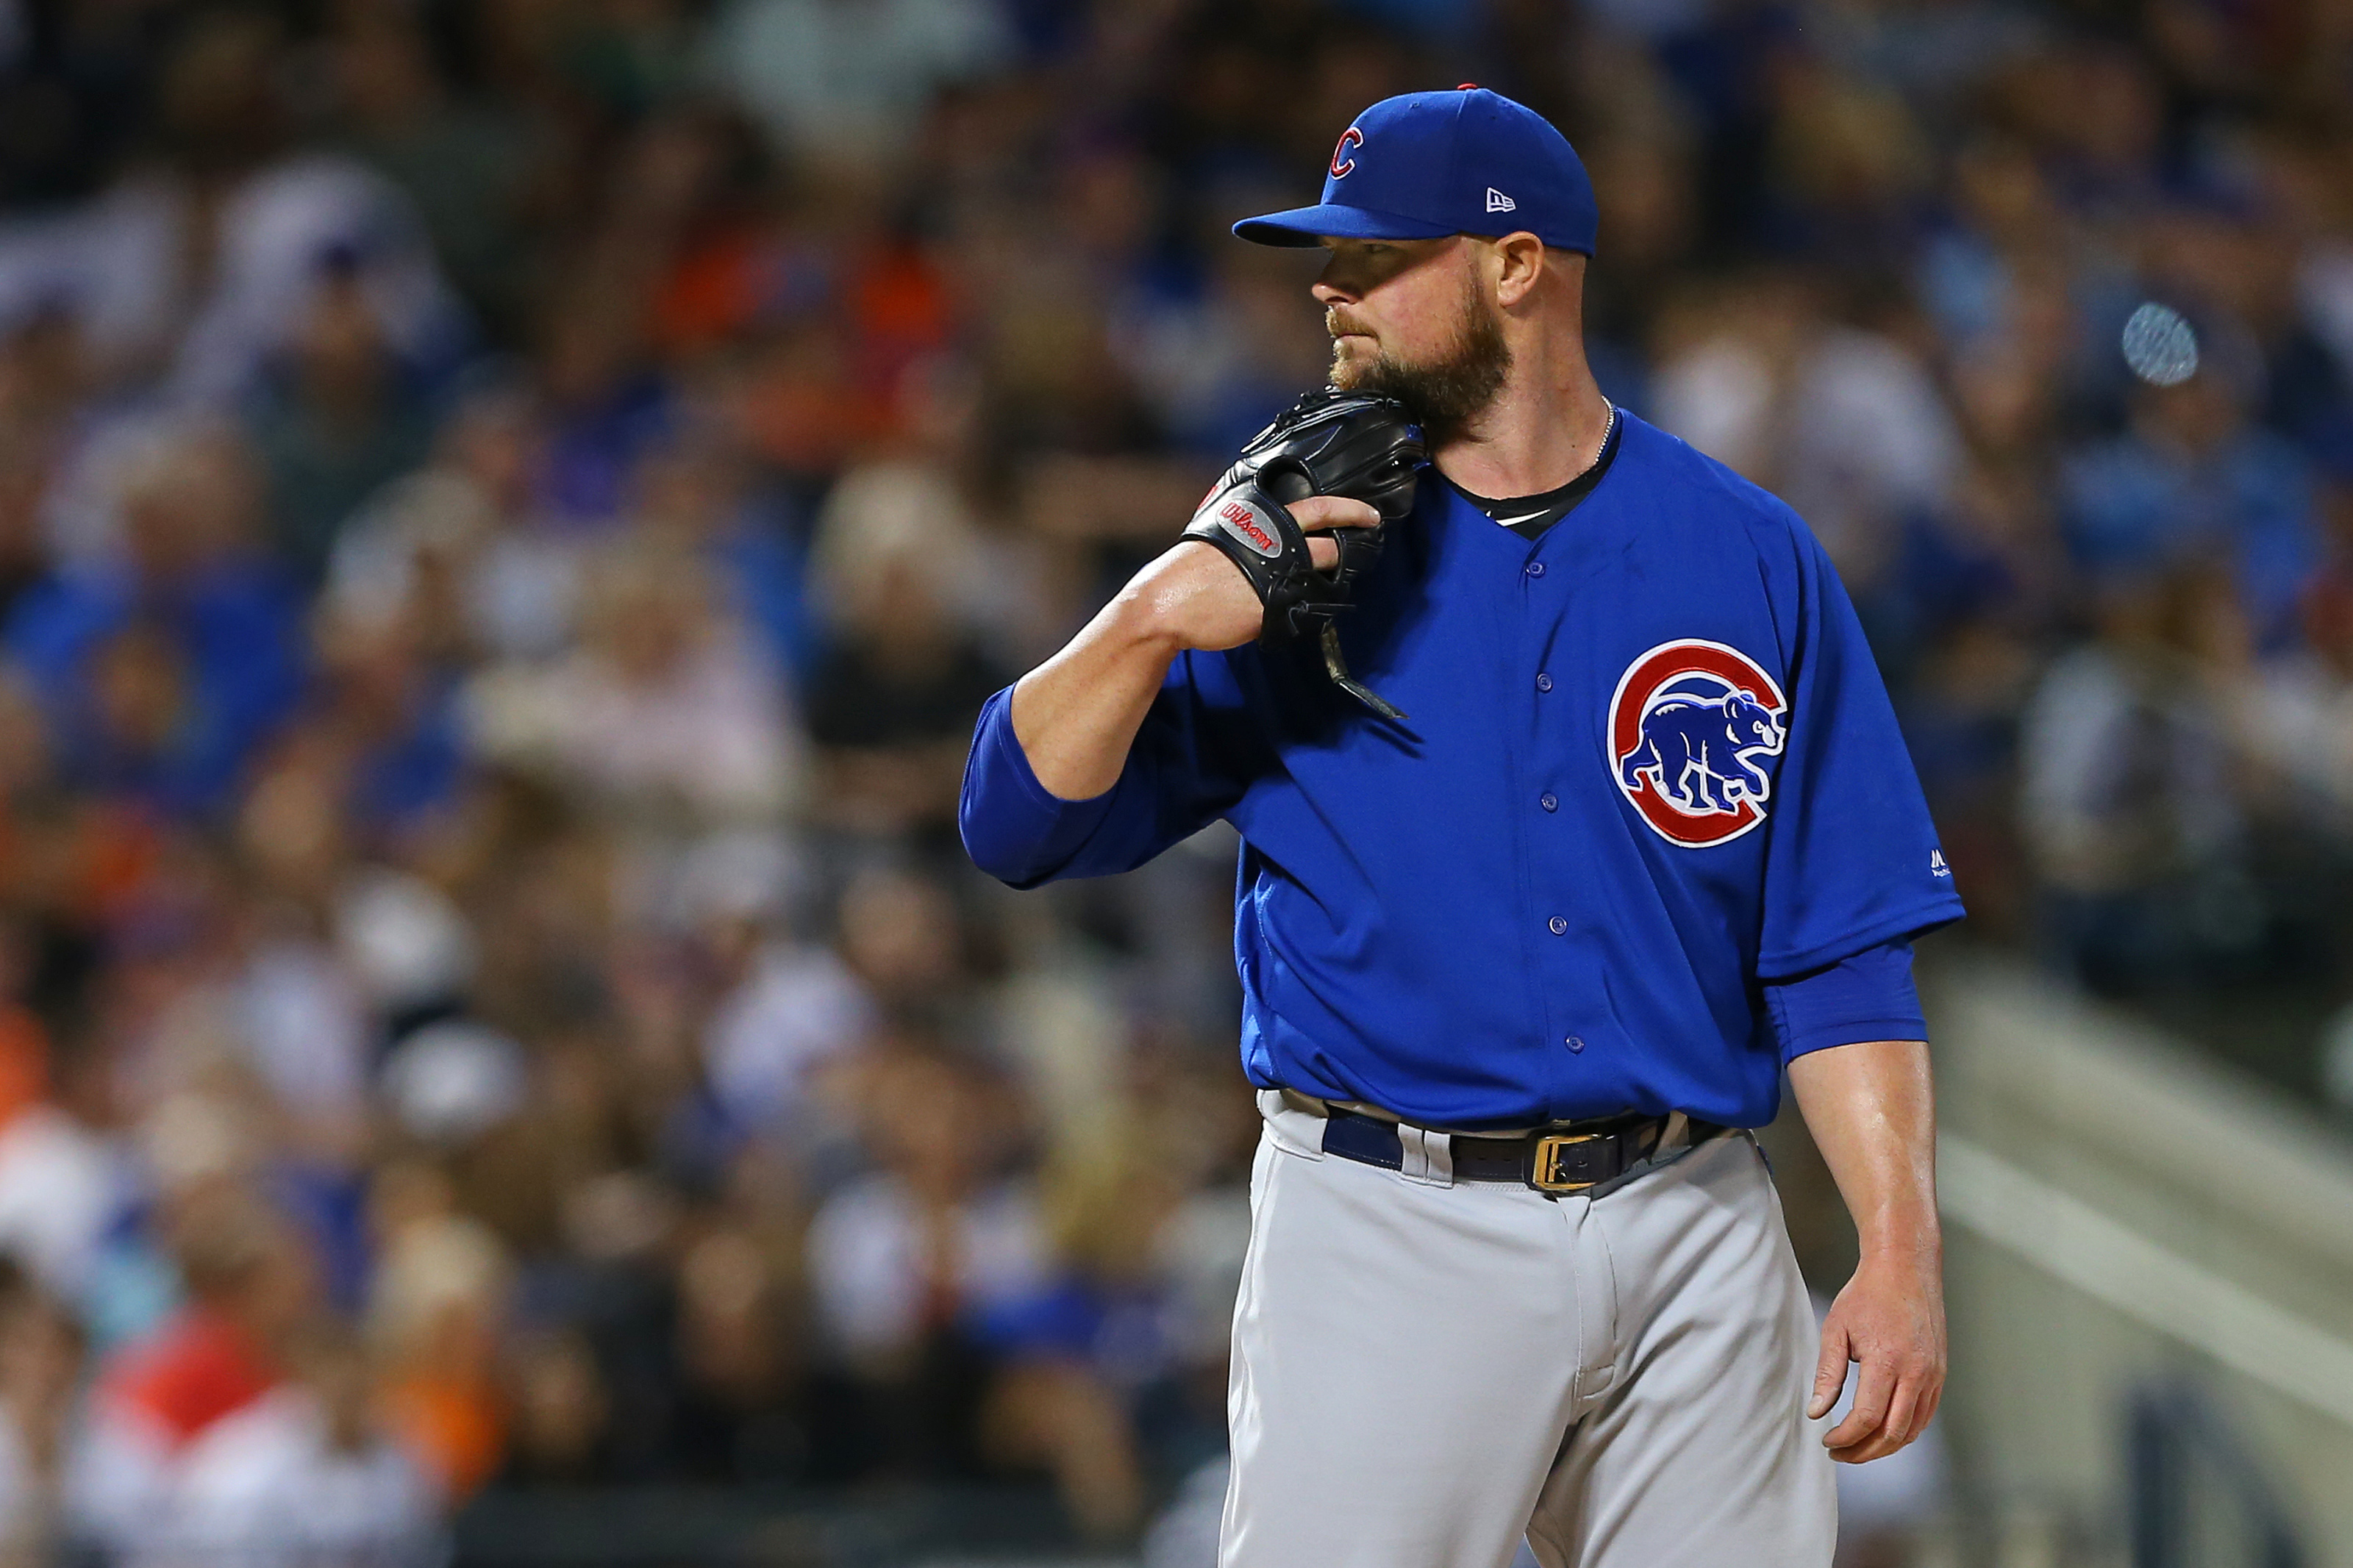 Chicago Cubs: A shortened season could help some of the older players